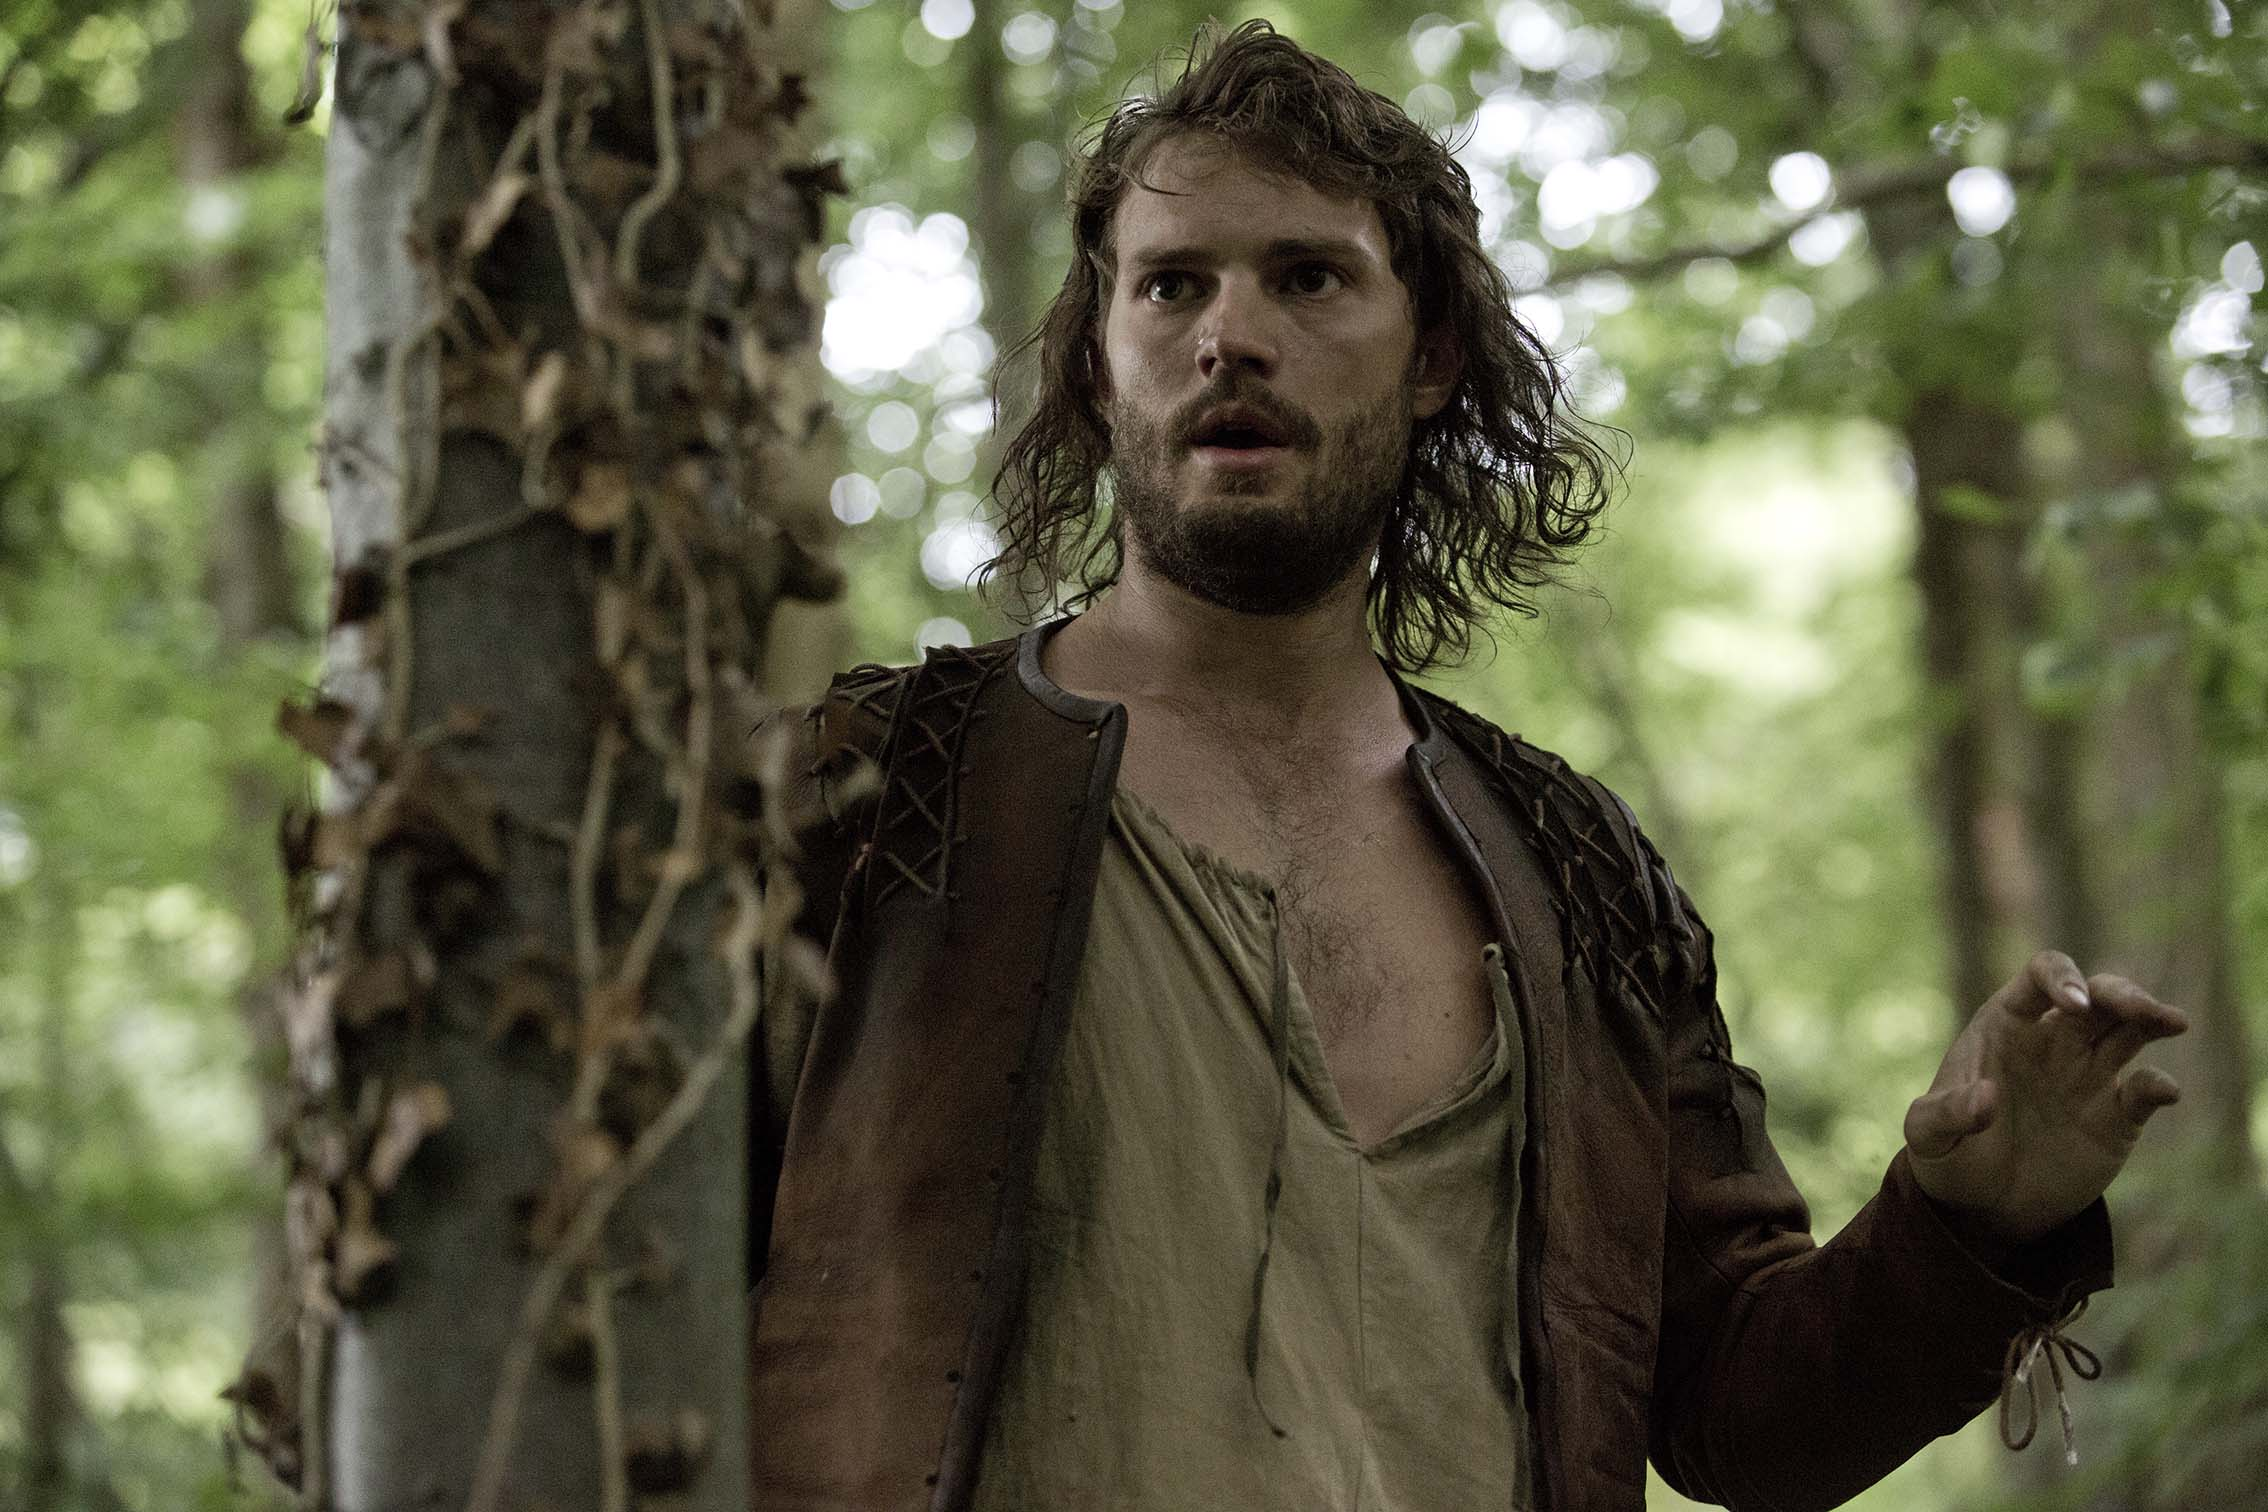 10 things you never knew about New Worlds and Fifty Shades of Grey star, Jamie Dornan